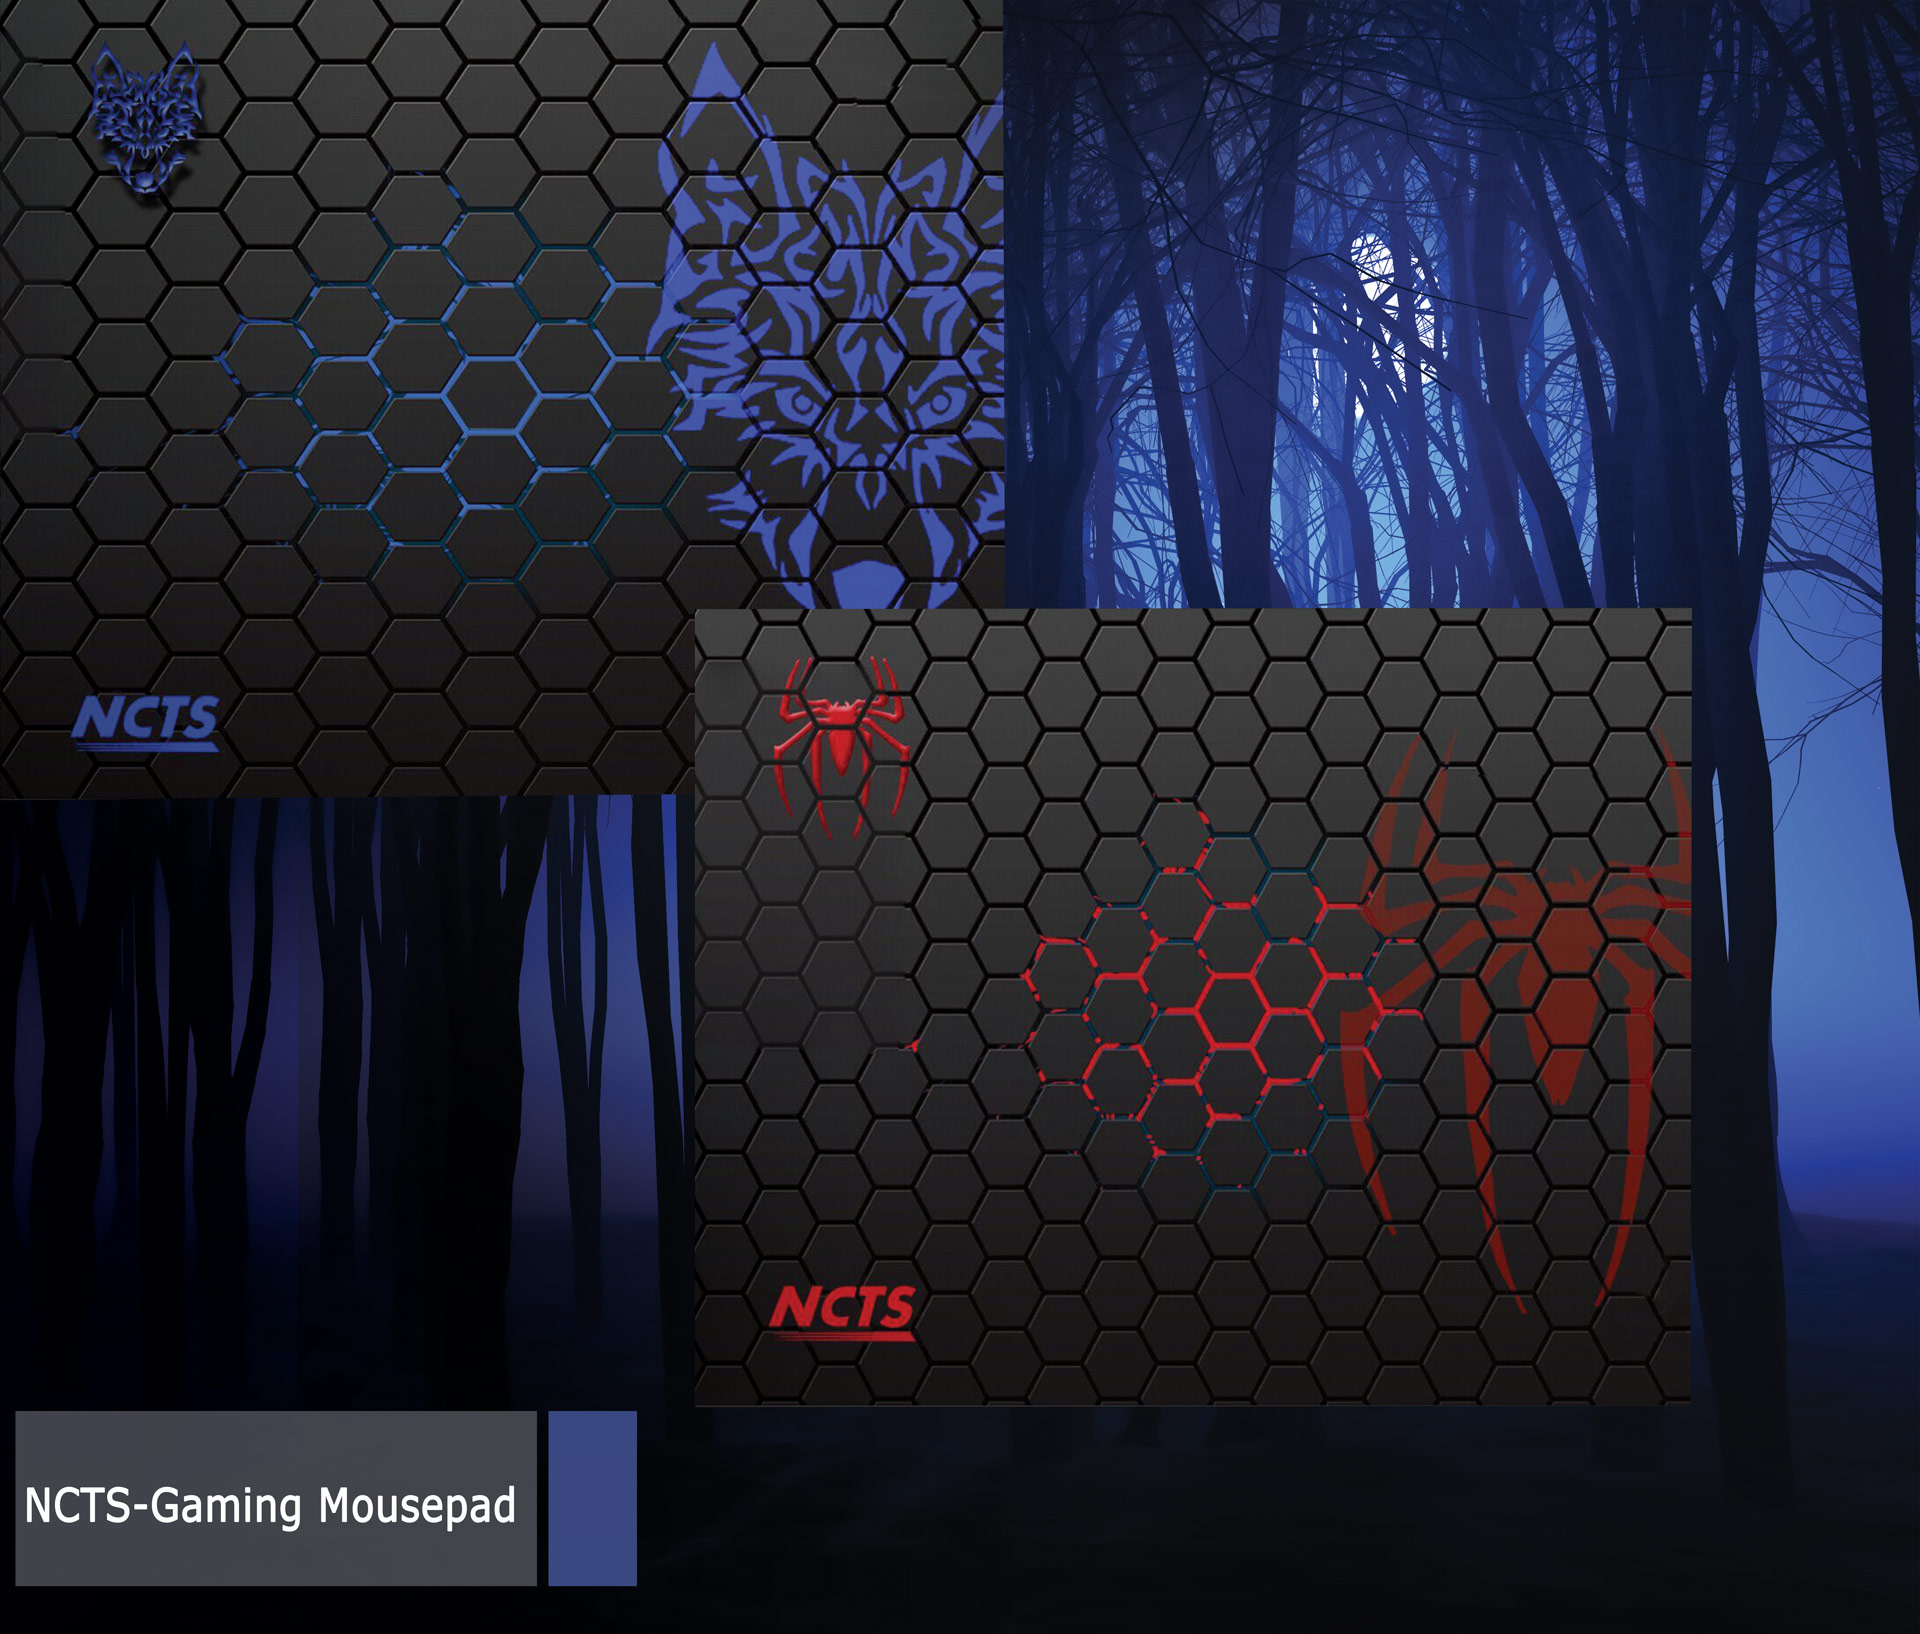 NCTS NORMAL GAMING MOUSE PAD (245*320*4MM)